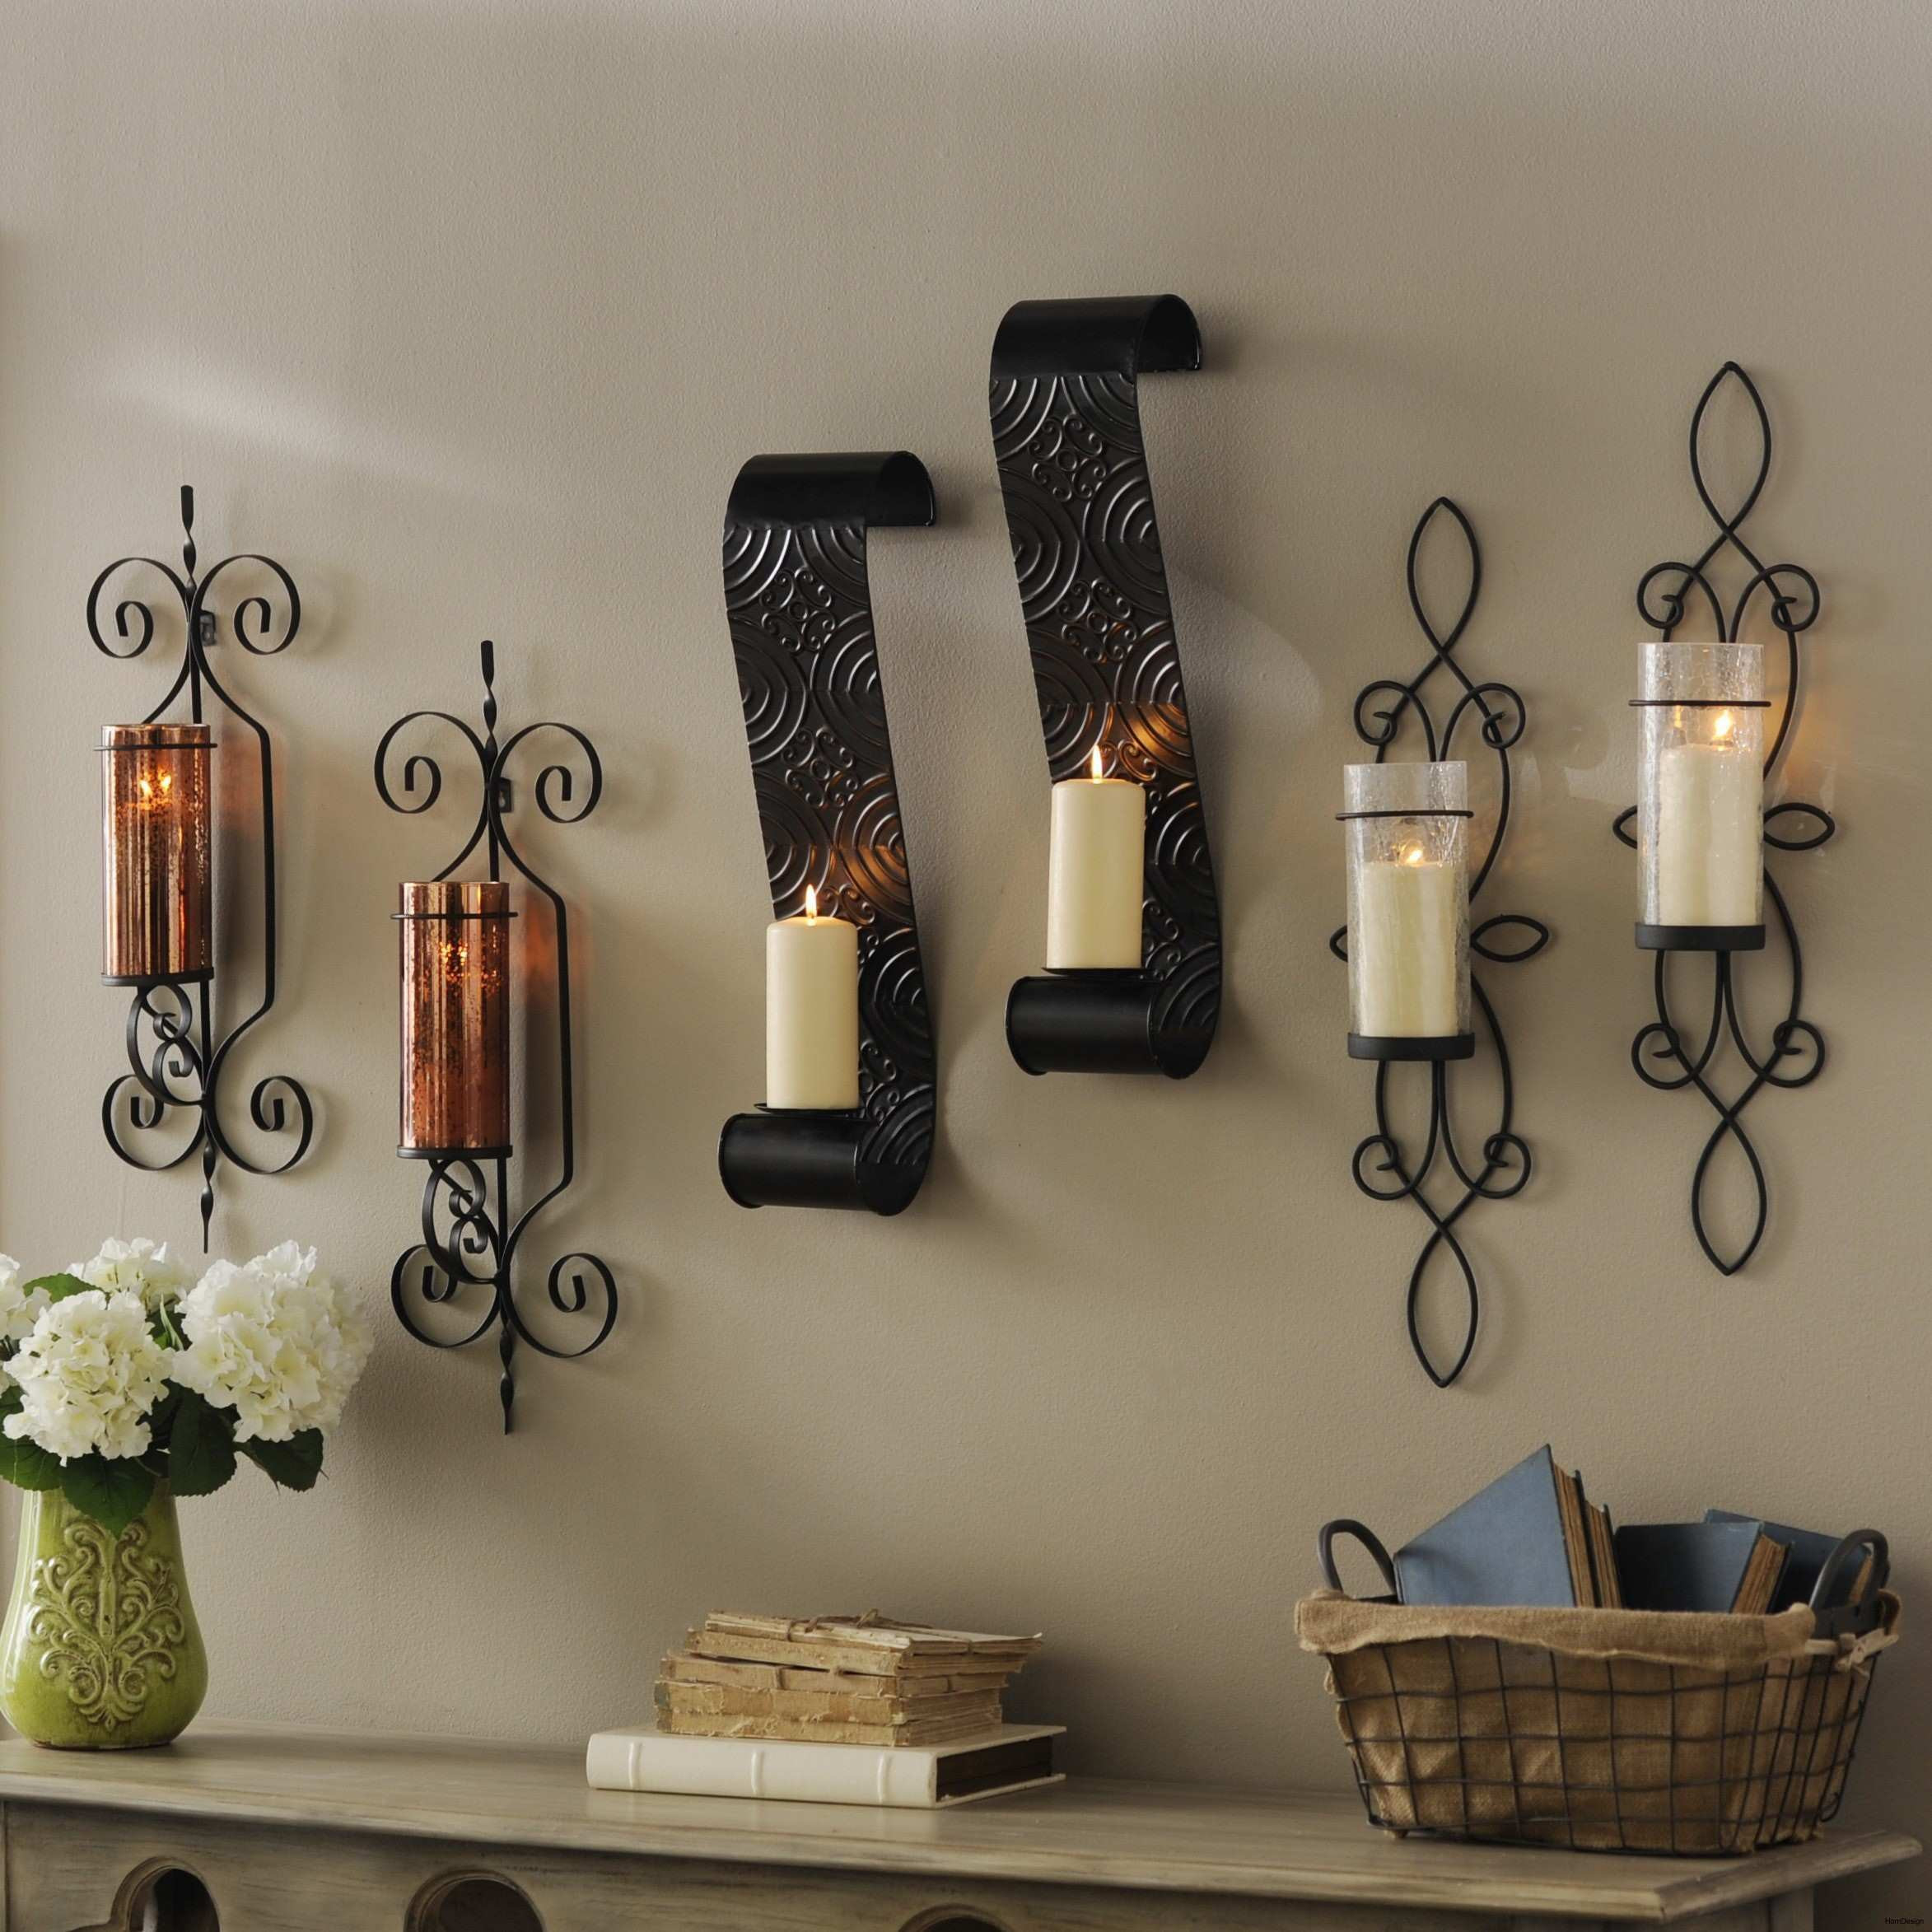 Farmhouse Metal Wall Vase Of Decorating Ideas for Home On A Budget Luxury Kitchen Light Cover with Decorating Ideas for Home On A Budget Luxury Kitchen Light Cover Best 1 Kirkland Wall Decor